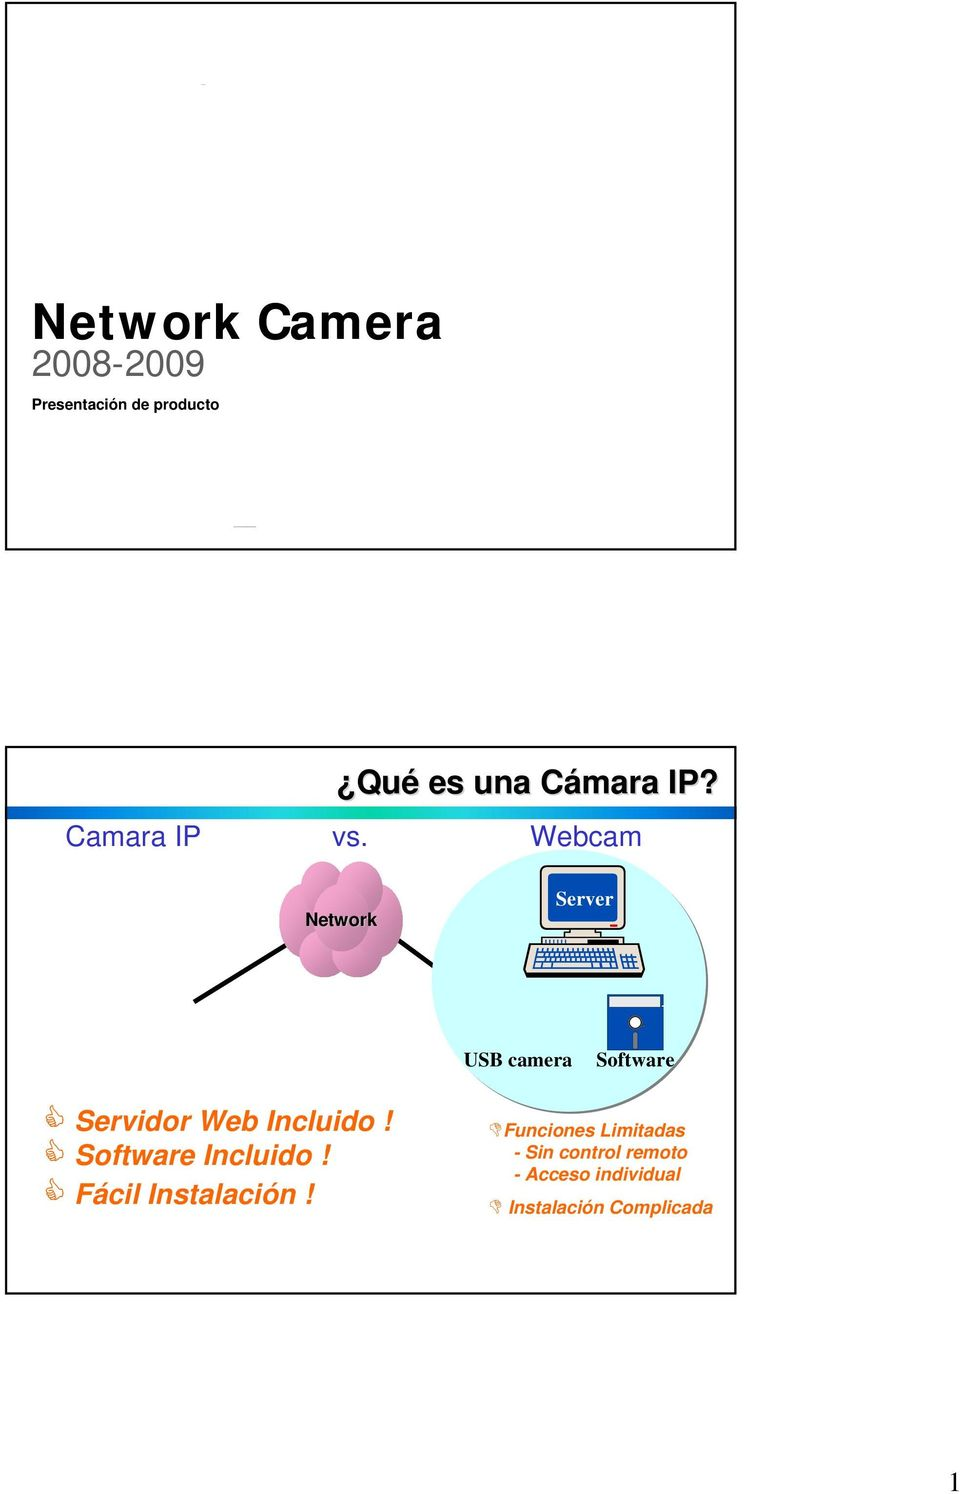 Webcam Network Server USB camera Software Servidor Web Incluido!